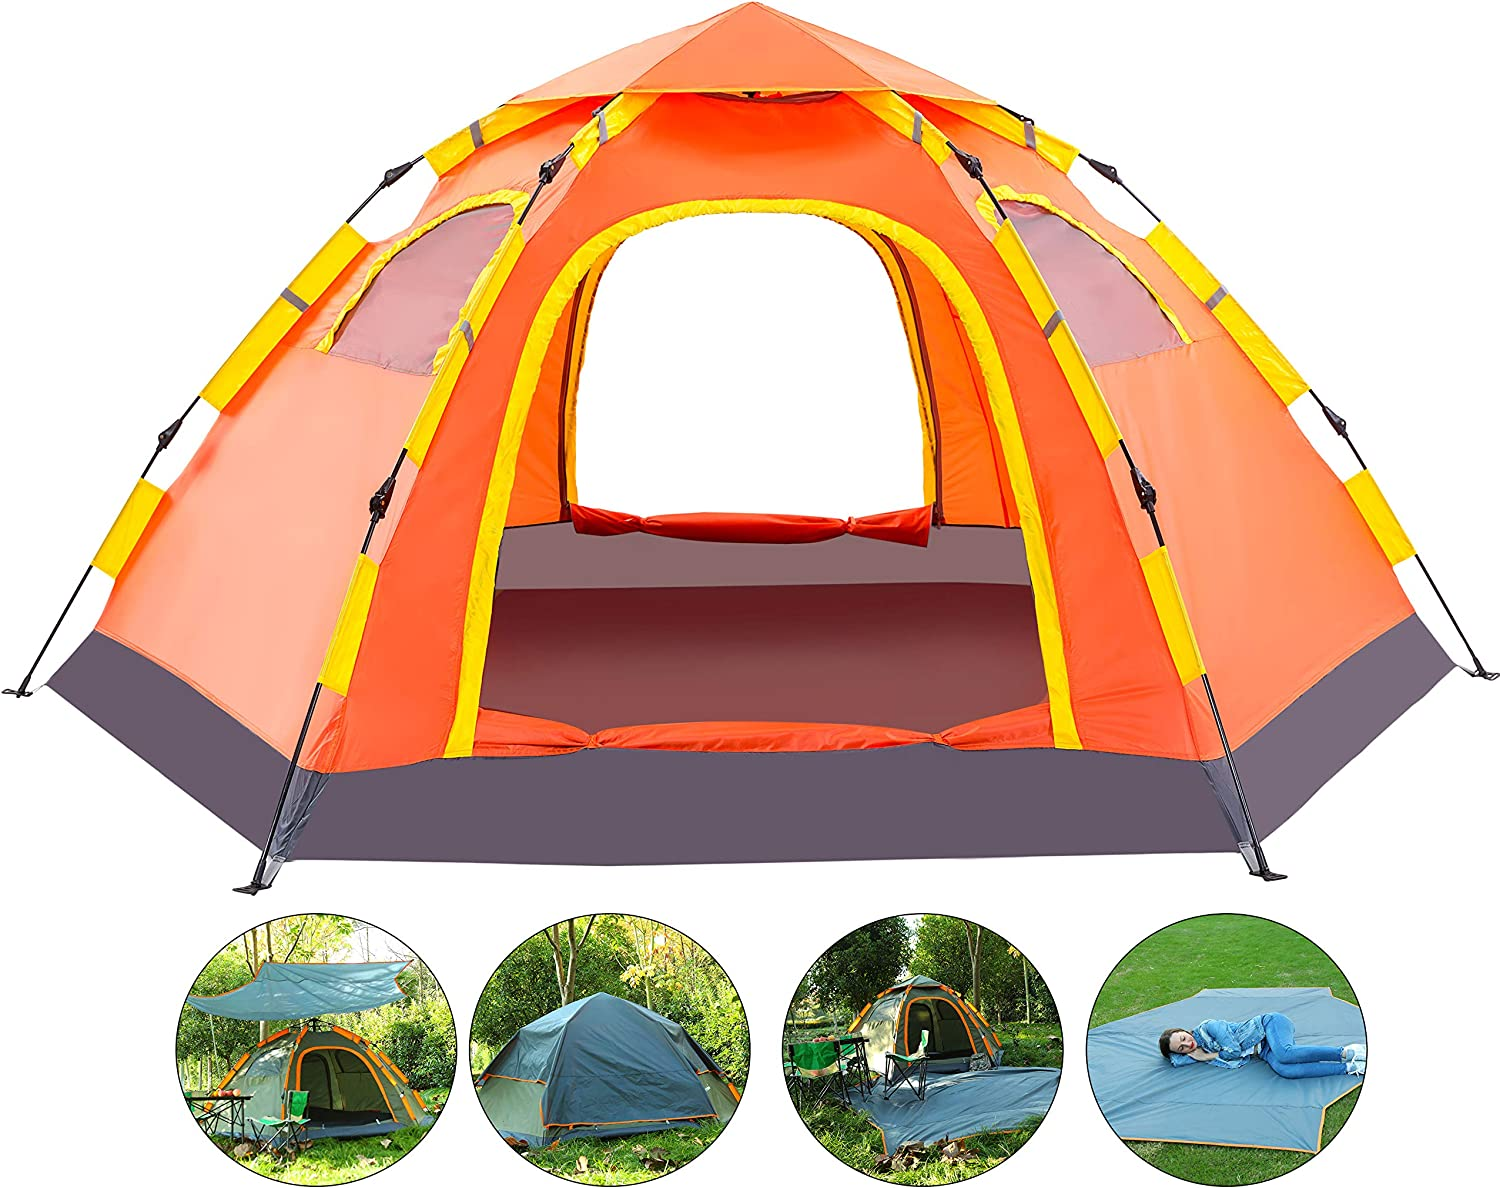 Pop up Camping Tent Instant Automatic Water Resistant Two Way Zippers Orange Set